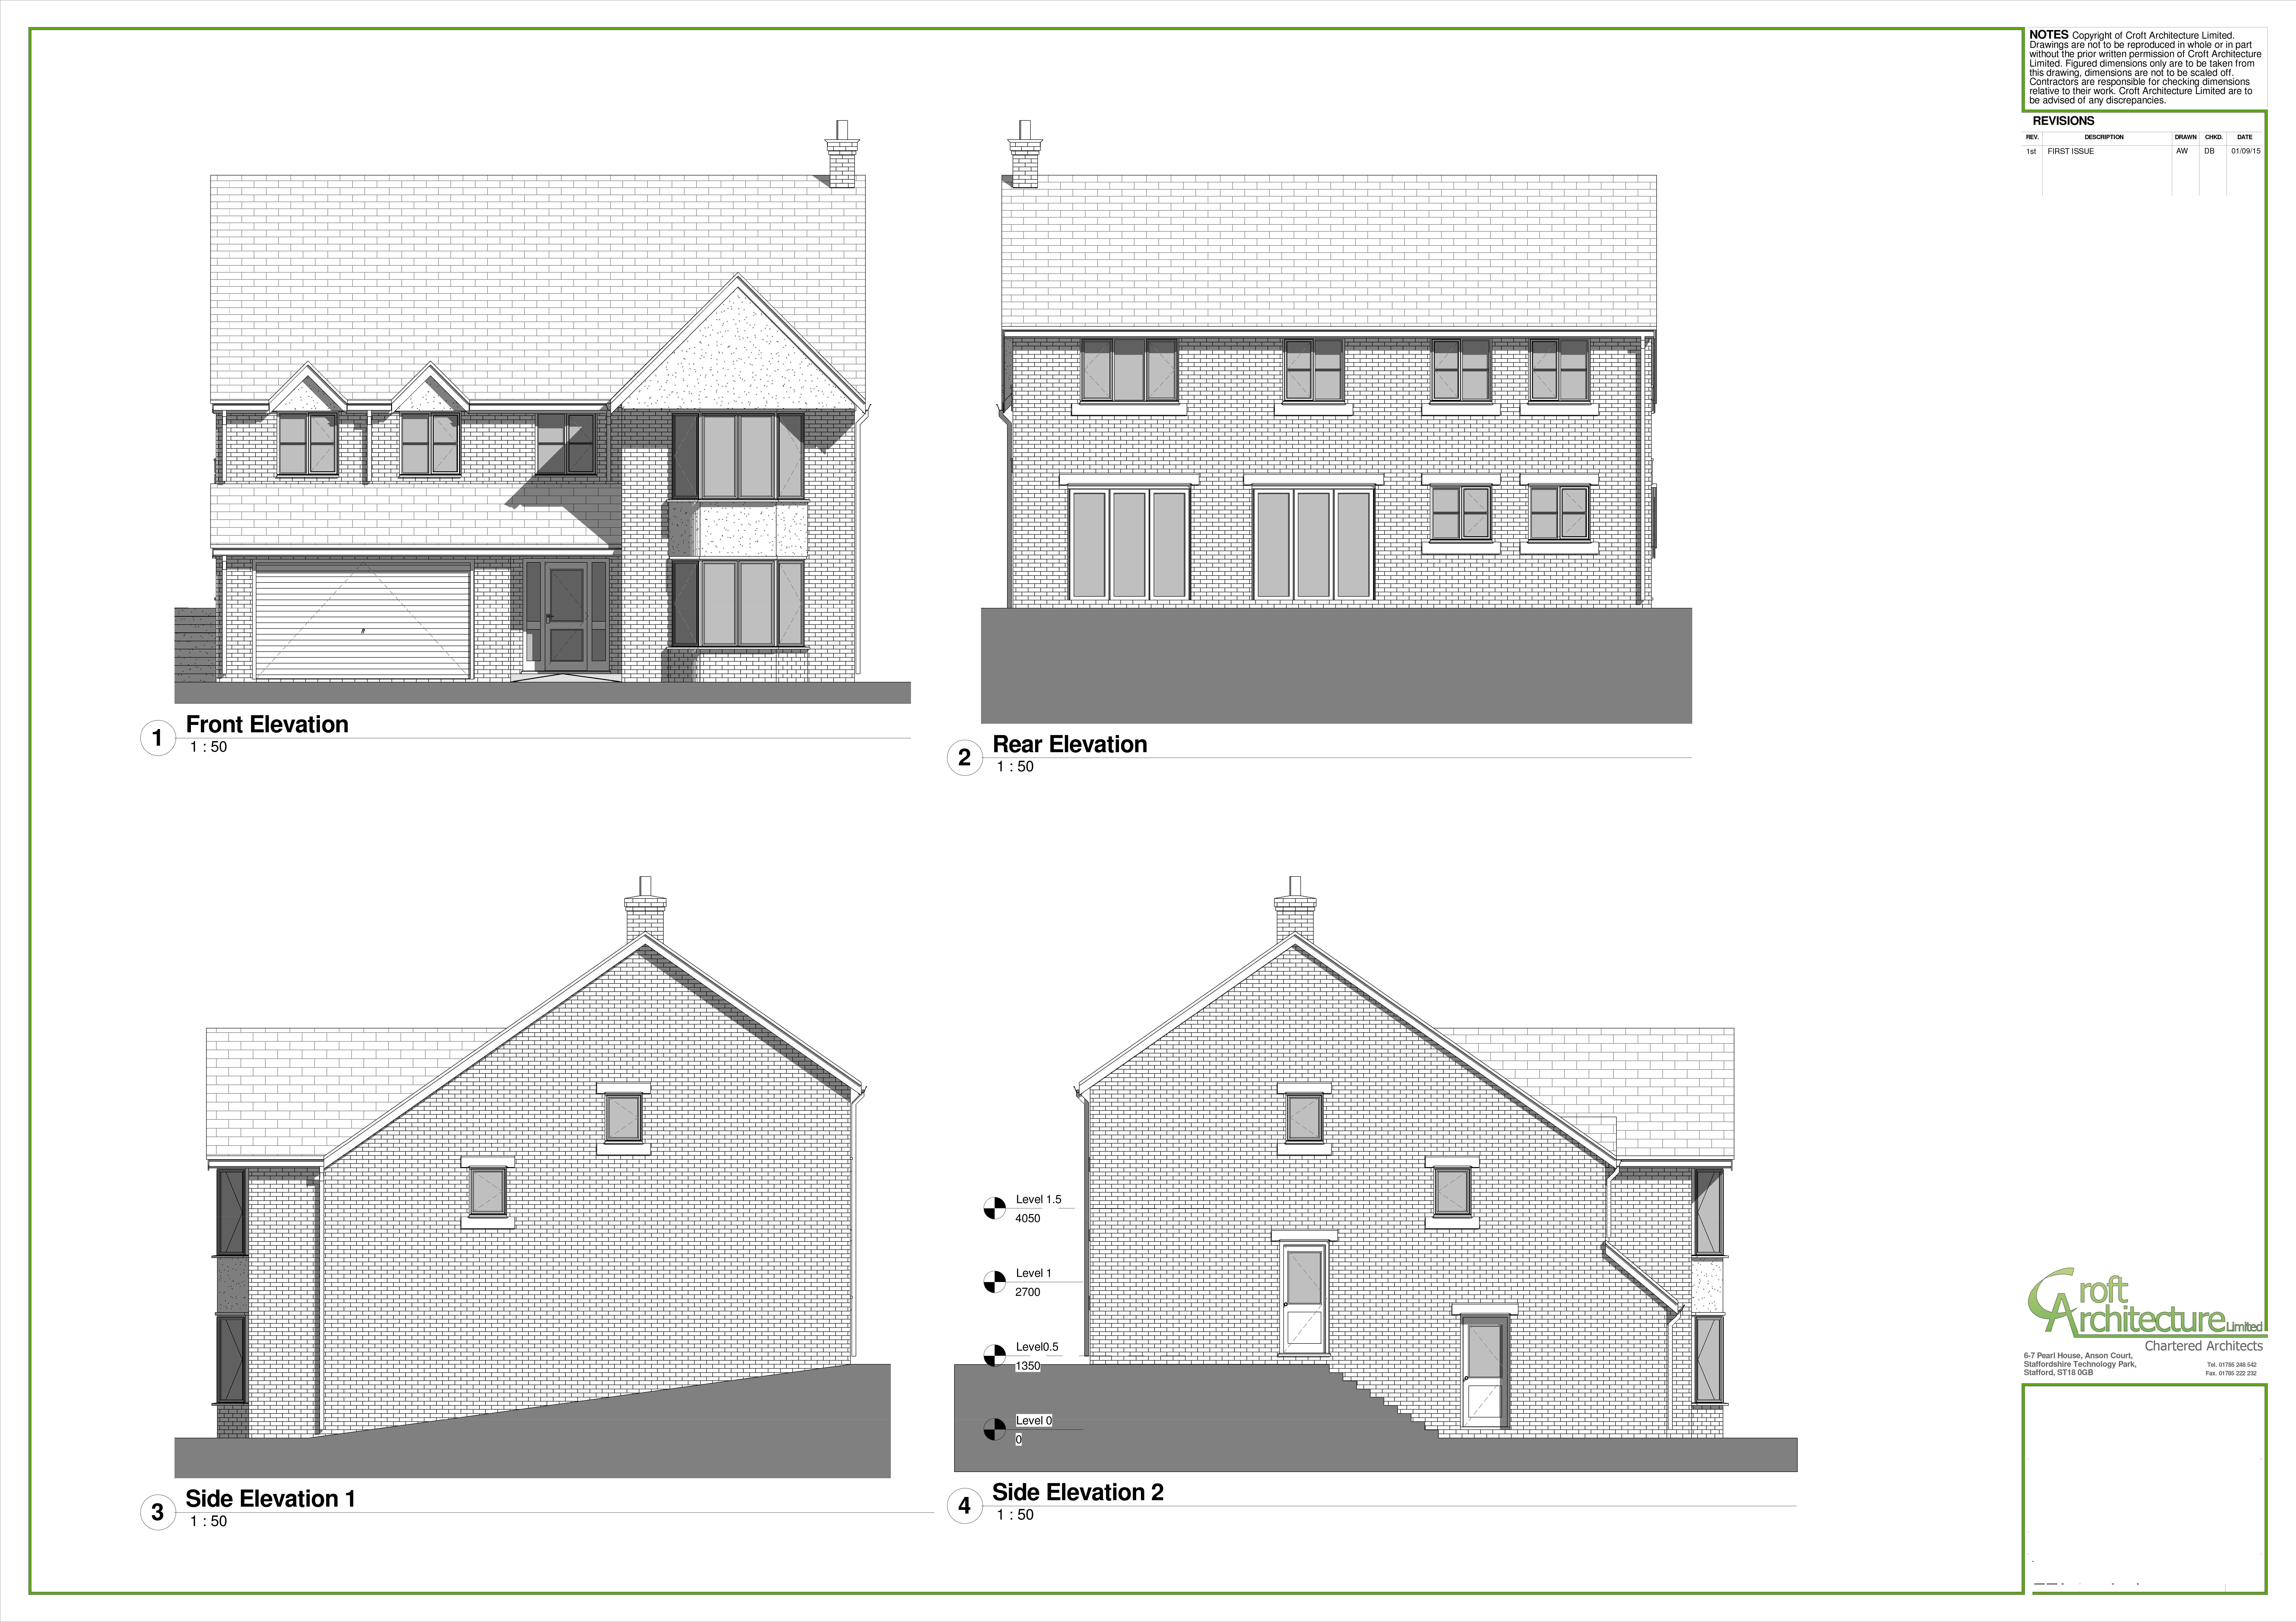 Croft Architecture House Type 1 Proposed Luxury Housing in Staffordshire